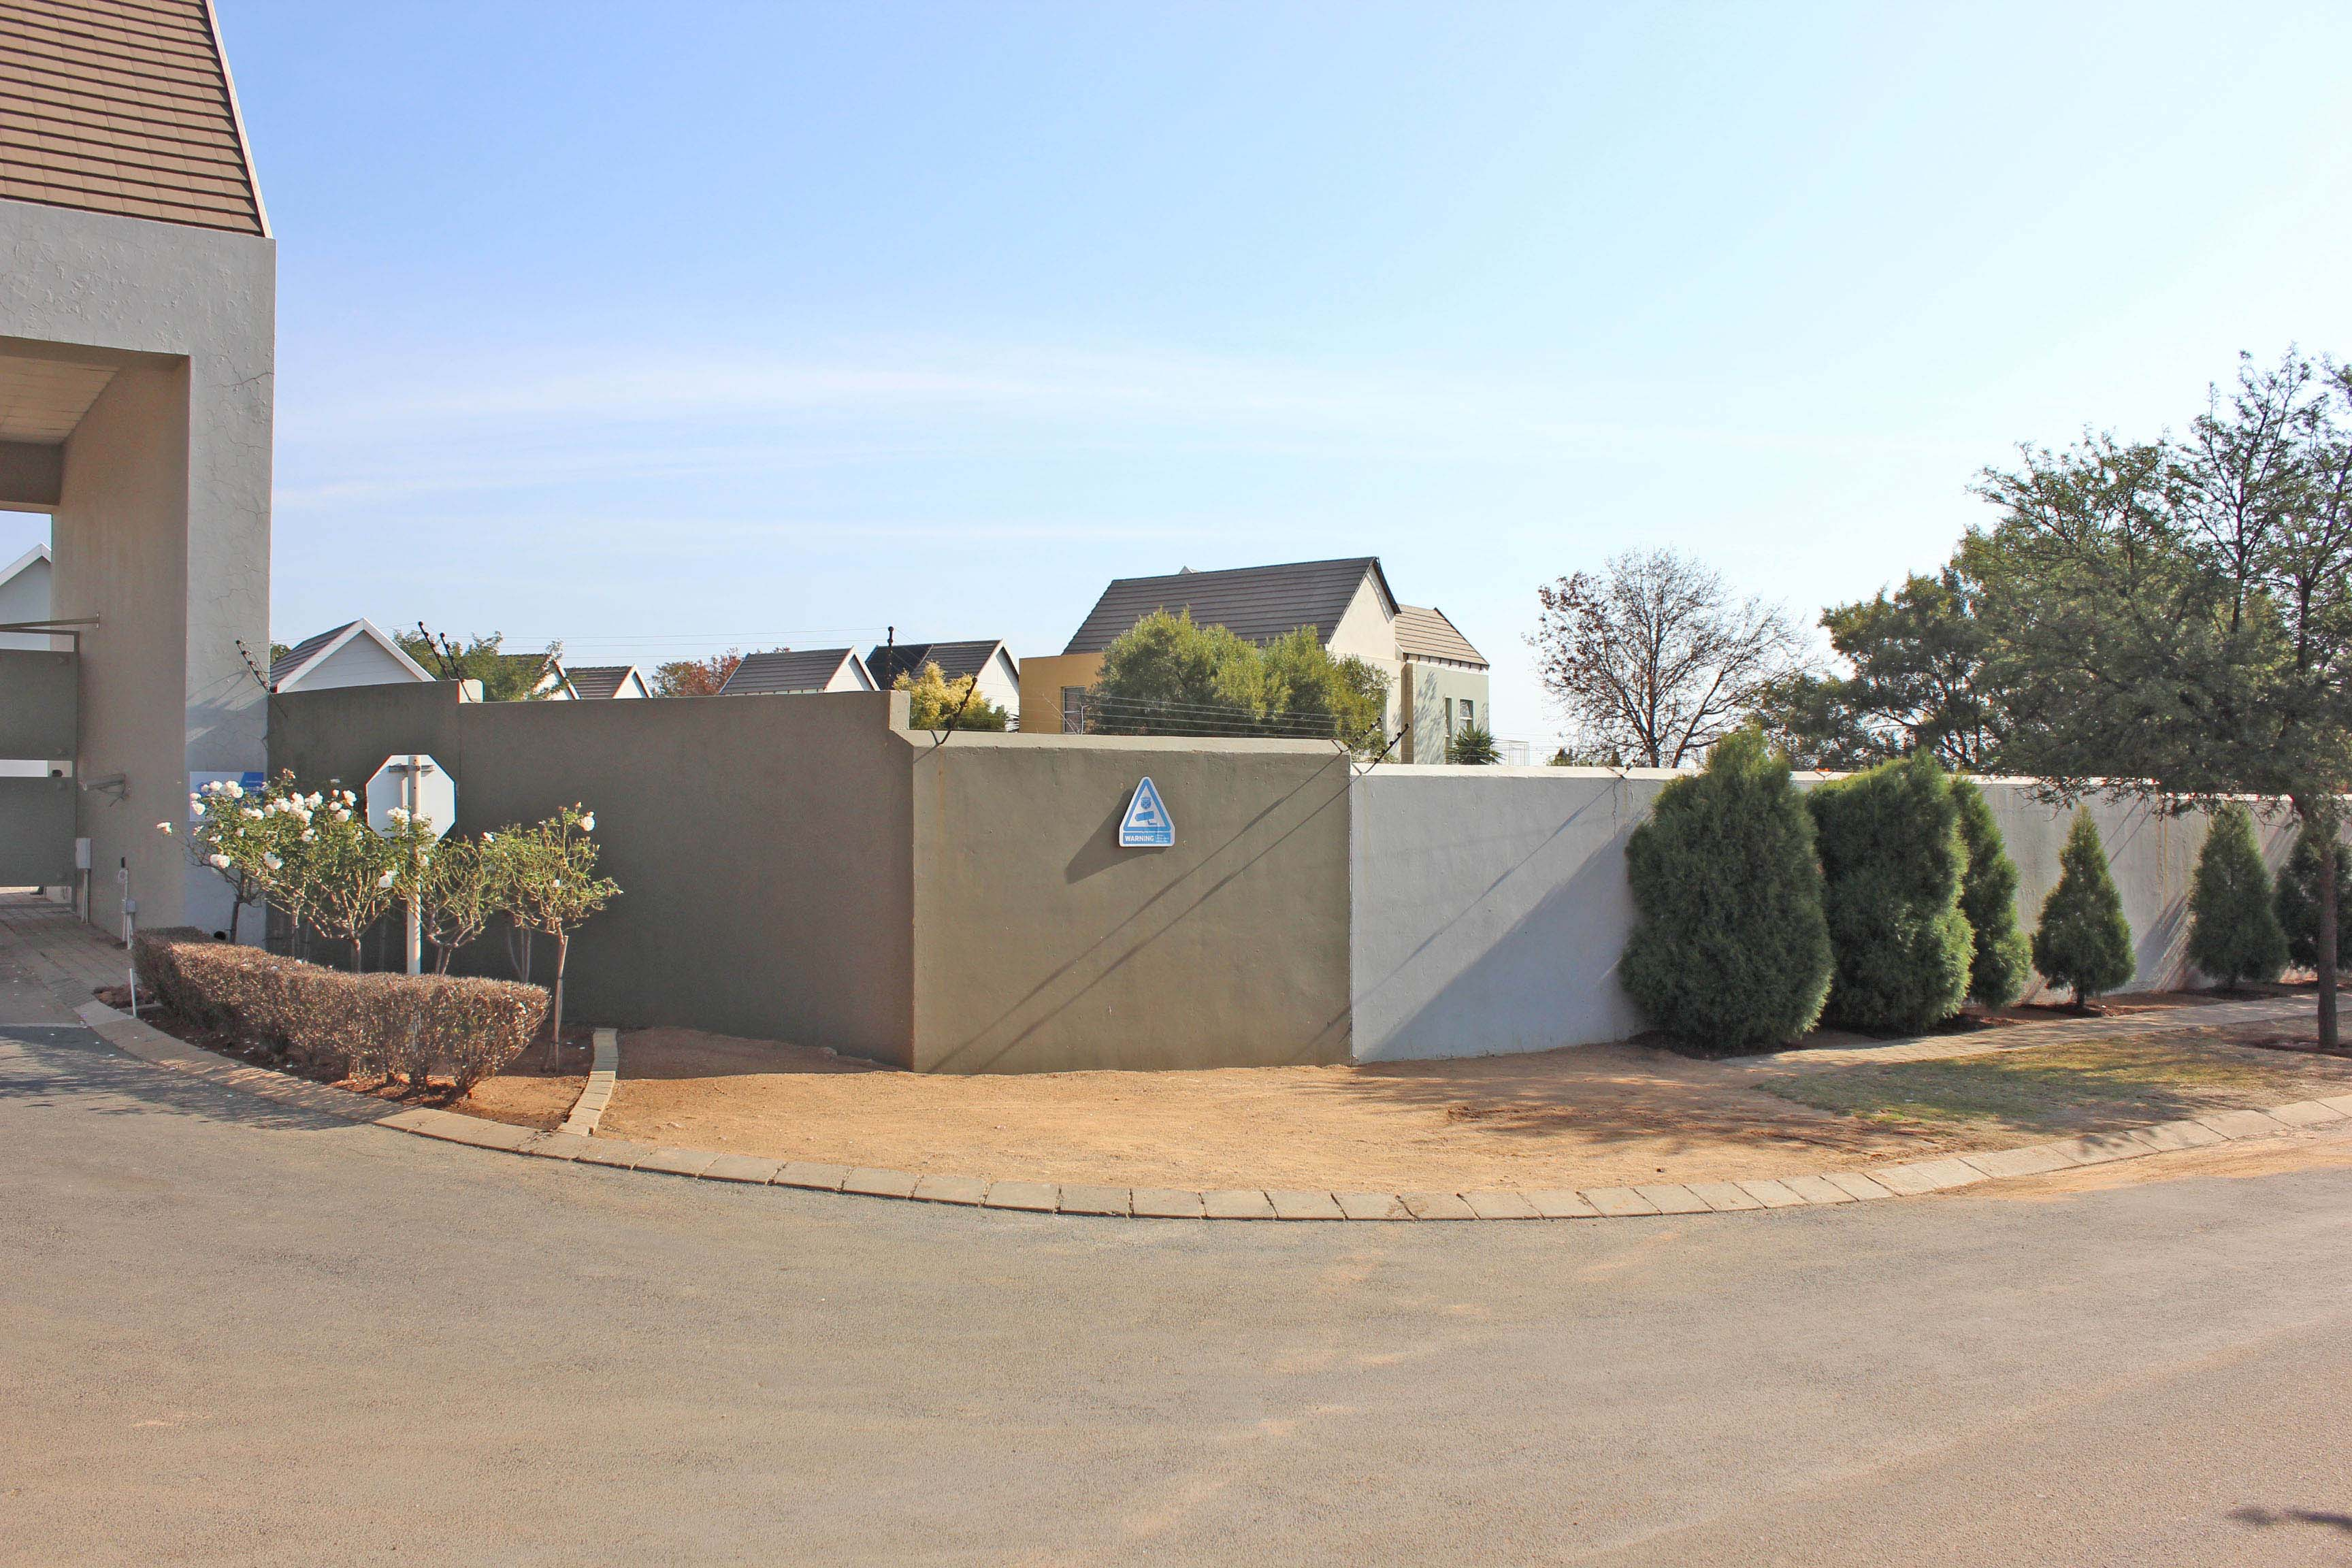 3 Bedroom Townhouse for sale in North Riding ENT0075308 : photo#15